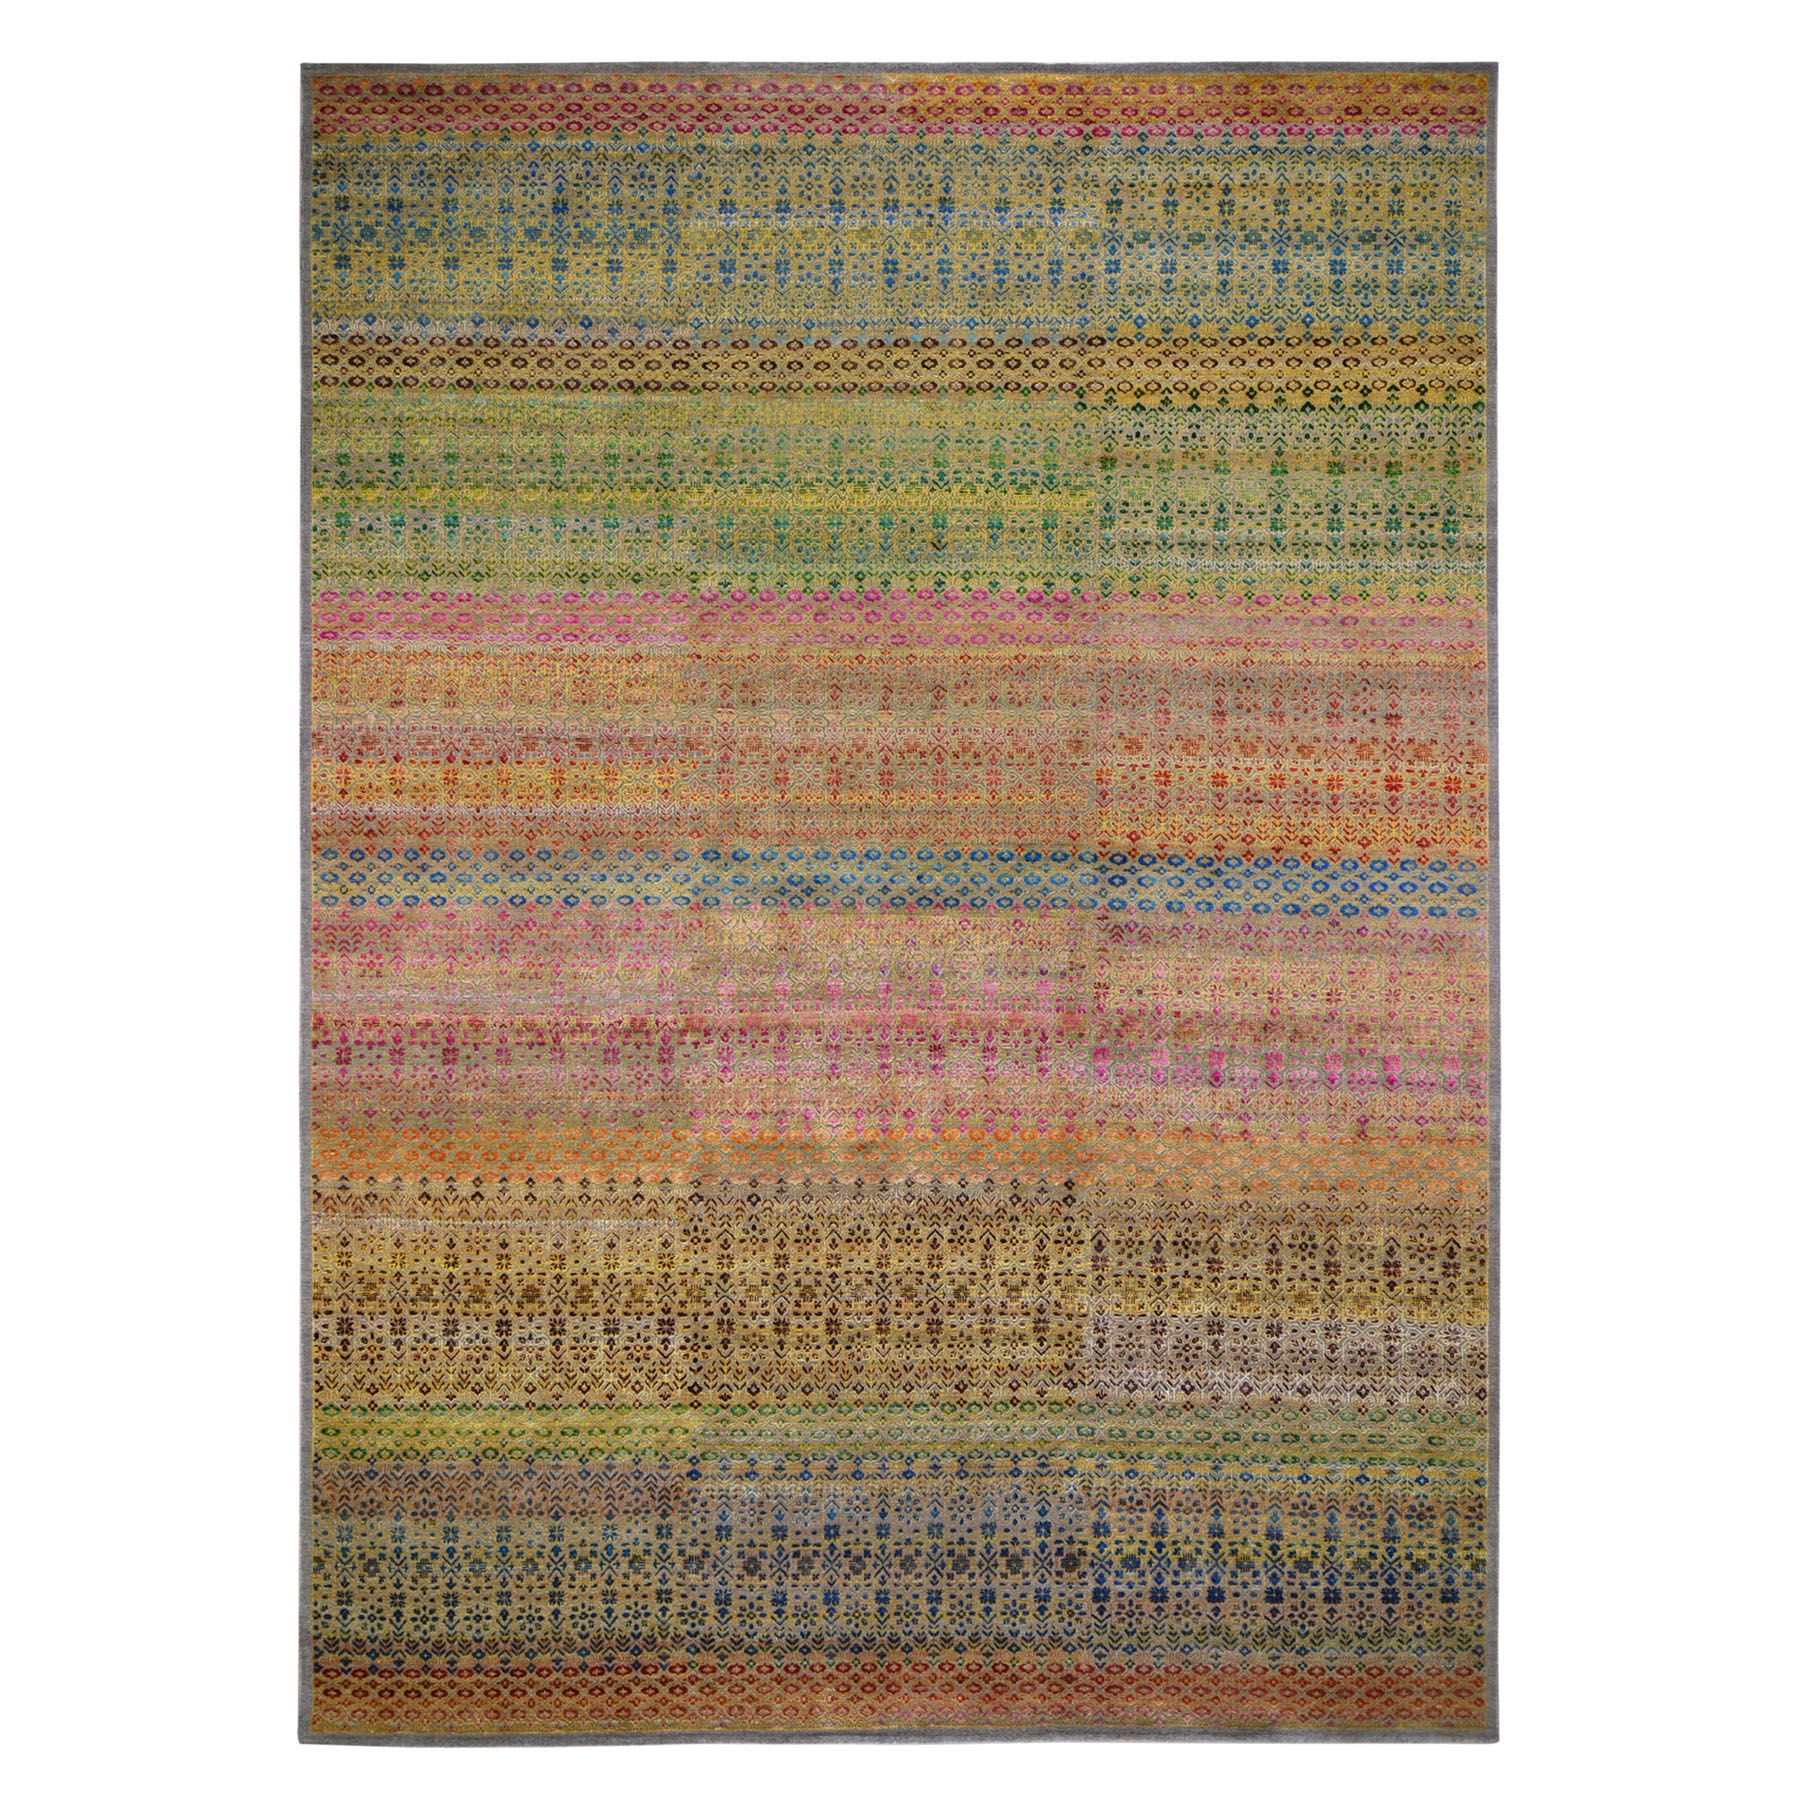 10'x14' Colorful Grass Design Sari Silk Textured Wool Modern Hand Knotted Oriental Rug